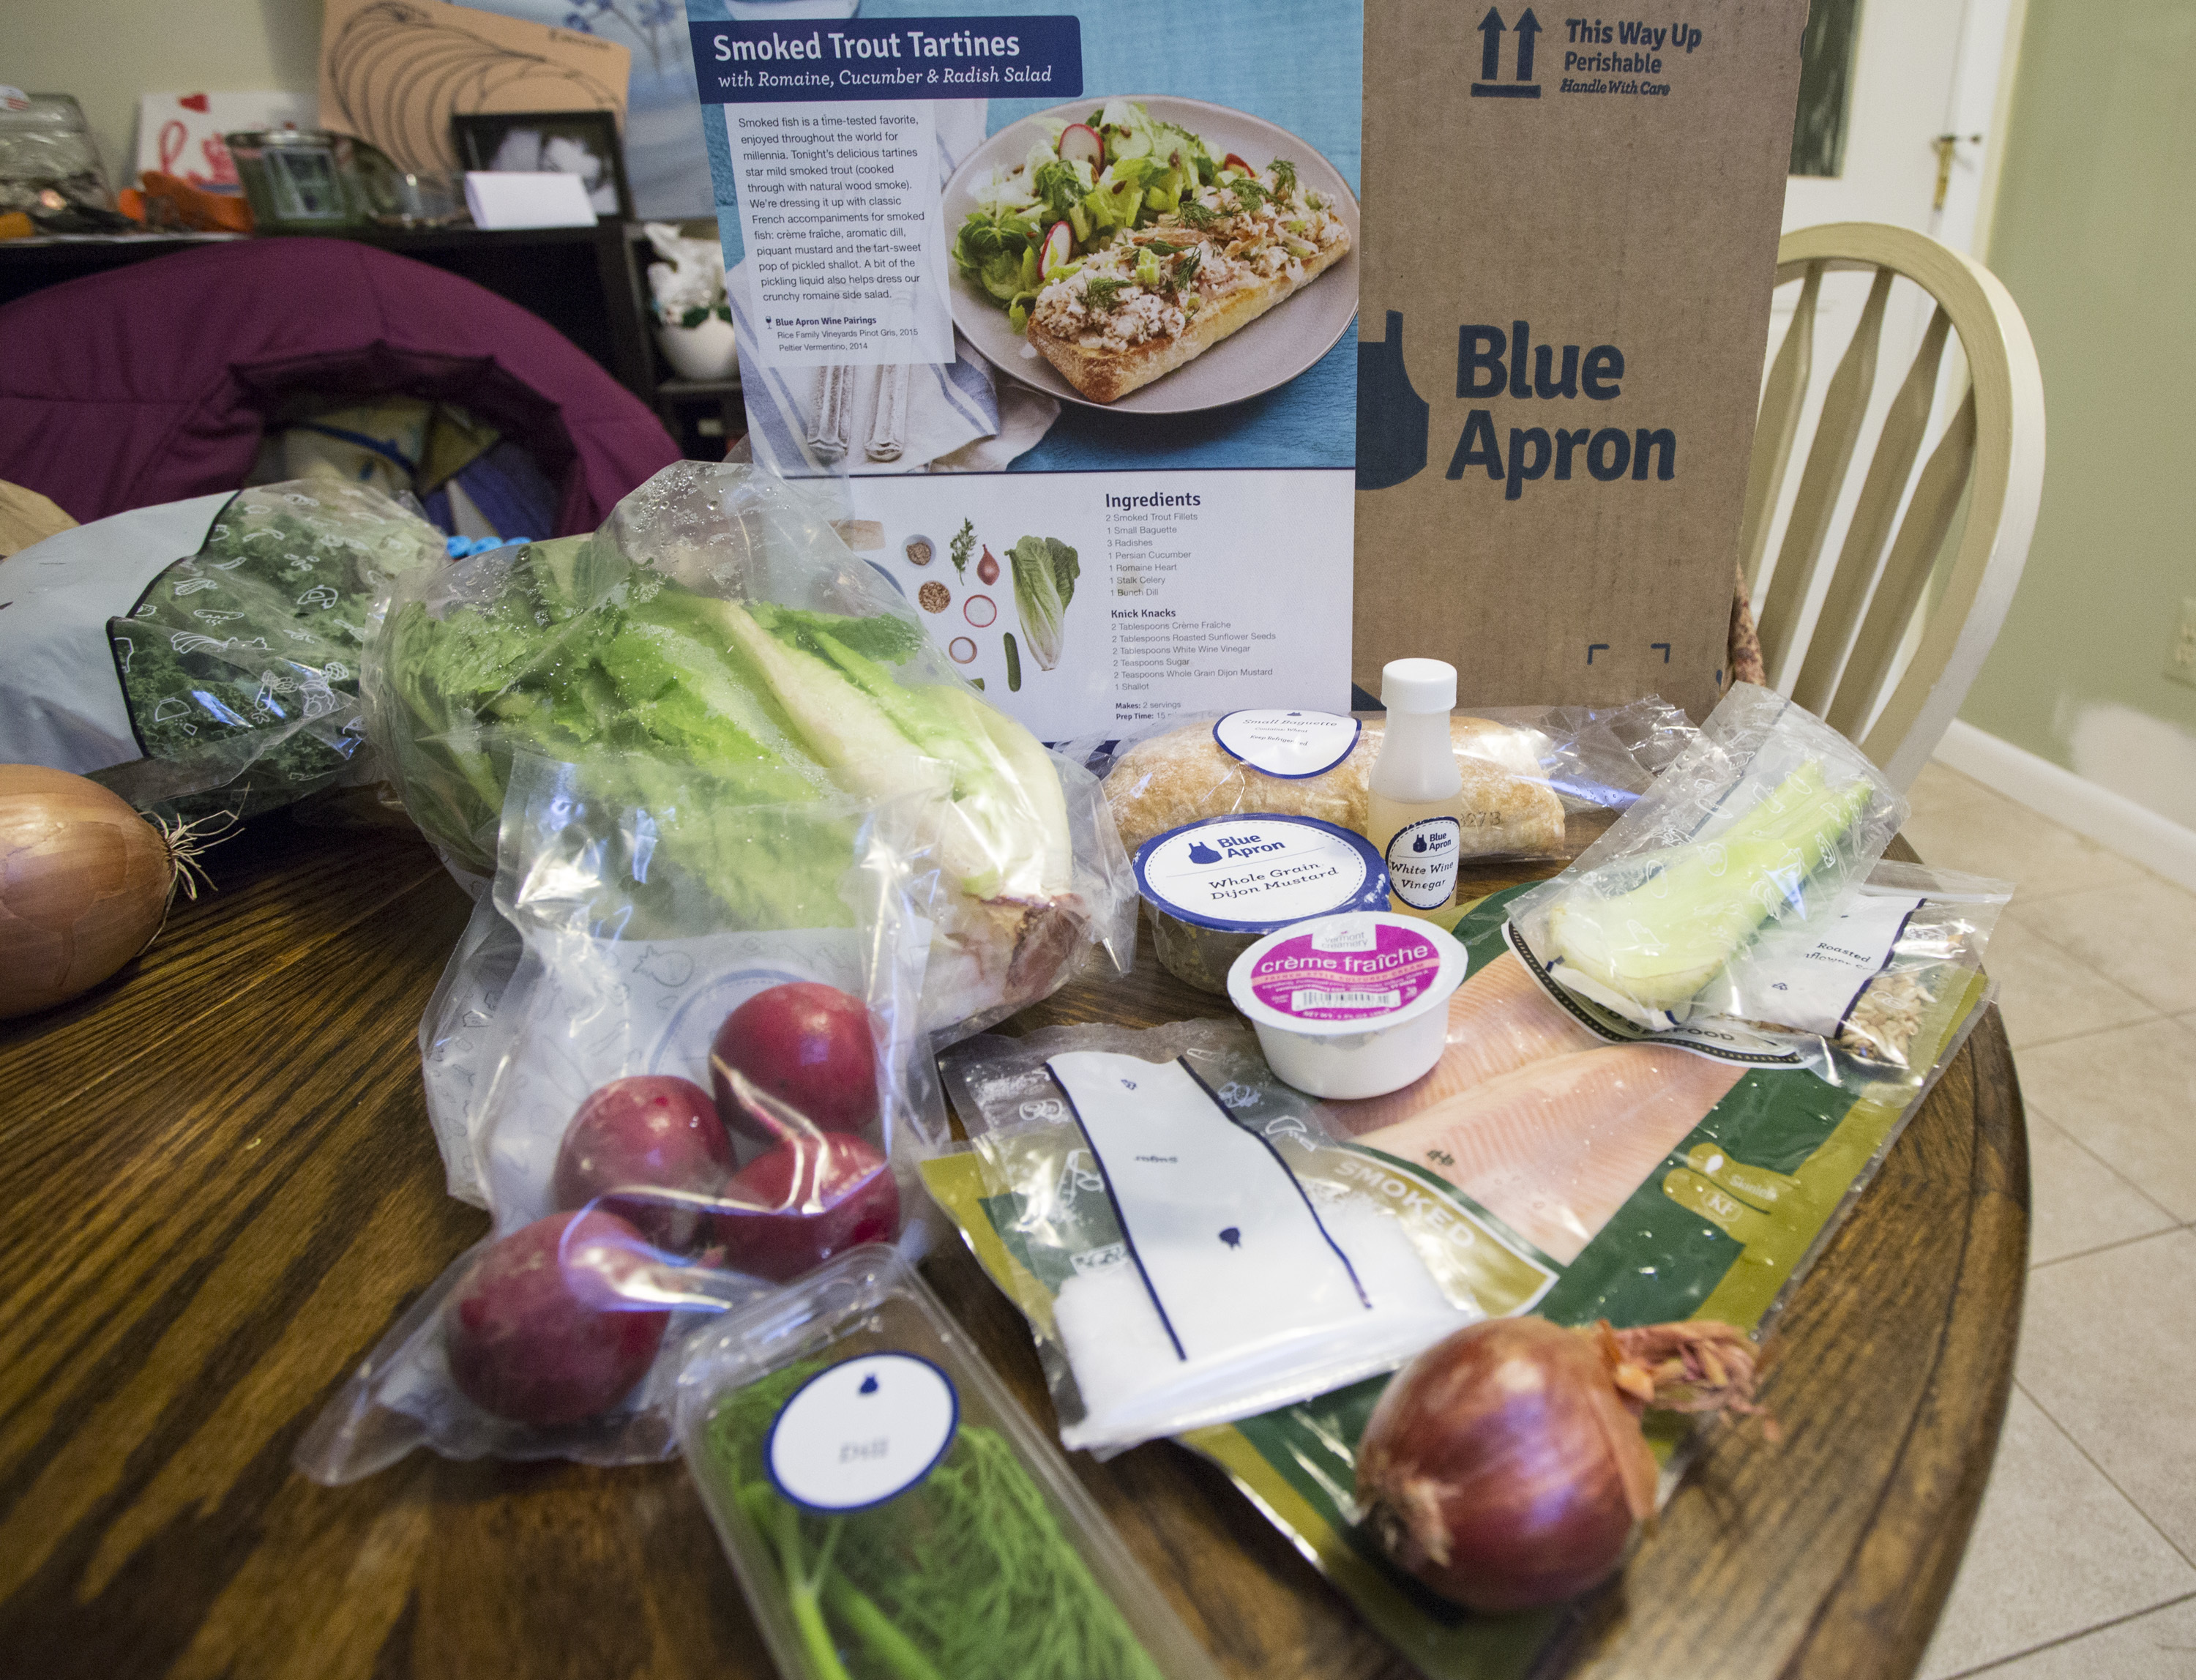 While it may seem that heaps of plastic from meal kit delivery services like Blue Apron make them less environmentally friendly than traditional grocery shopping, a new study says the kits actually produce less food waste. (Derek Davis/Portland Press Herald via Getty Images)